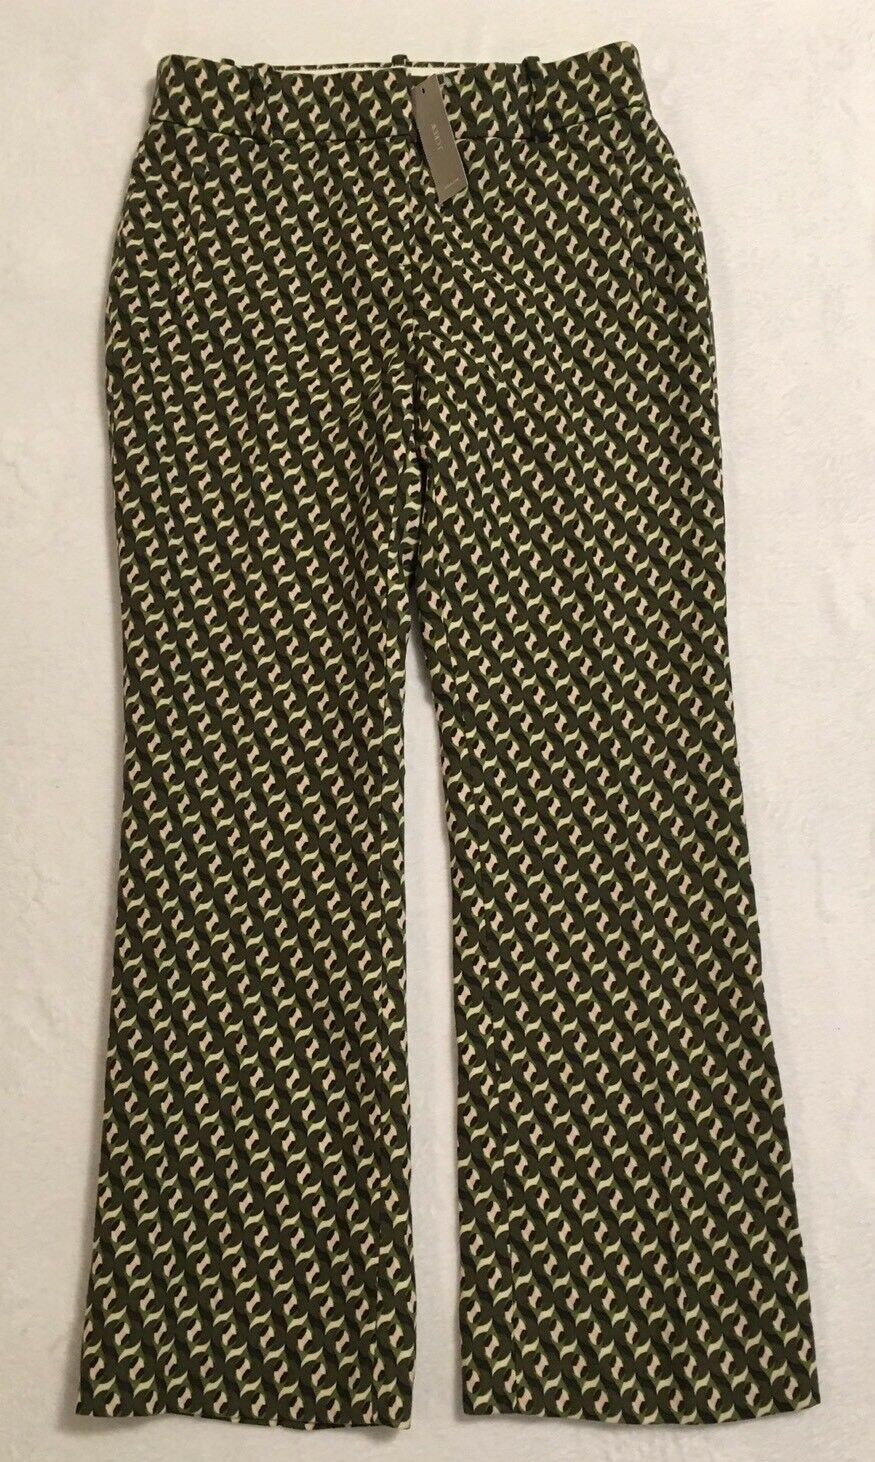 NWT JCREW Collection Cropped Wool Pant In Ratti Geometric Tile Print Size4 F6867